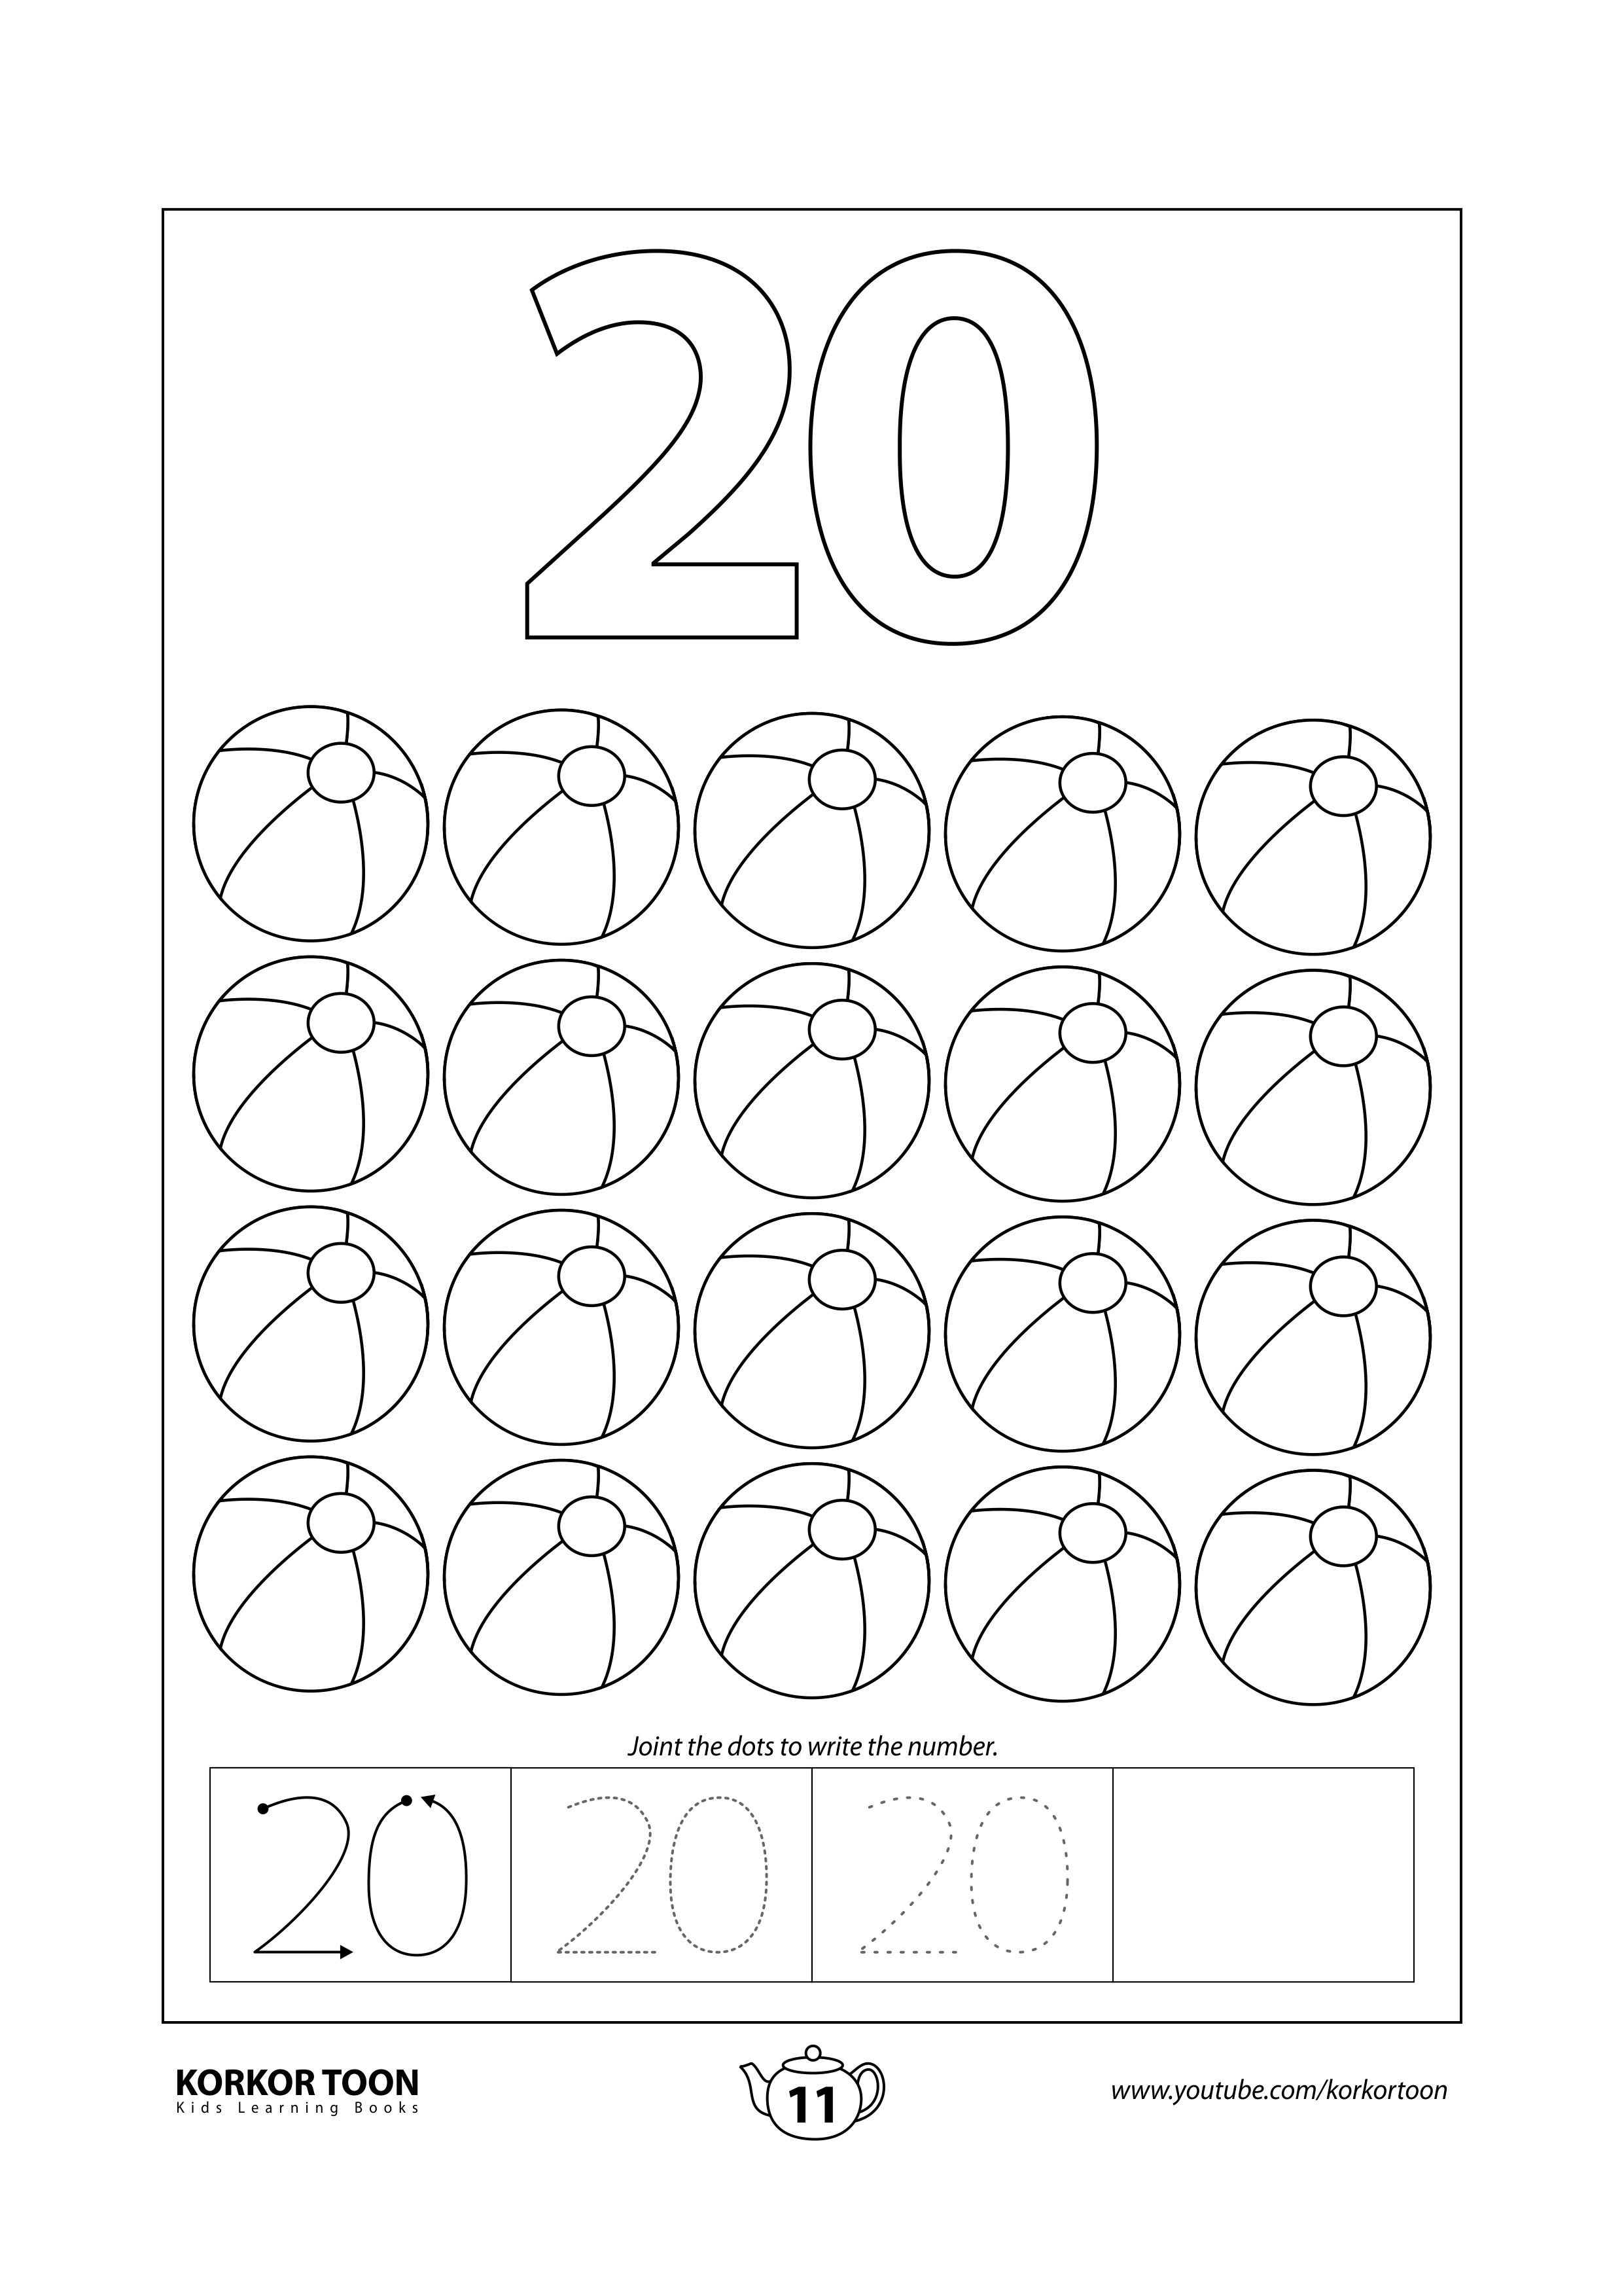 Numbers Coloring Book For Kids Number 20 Coloring Books Printables Free Kids Kids Coloring Books